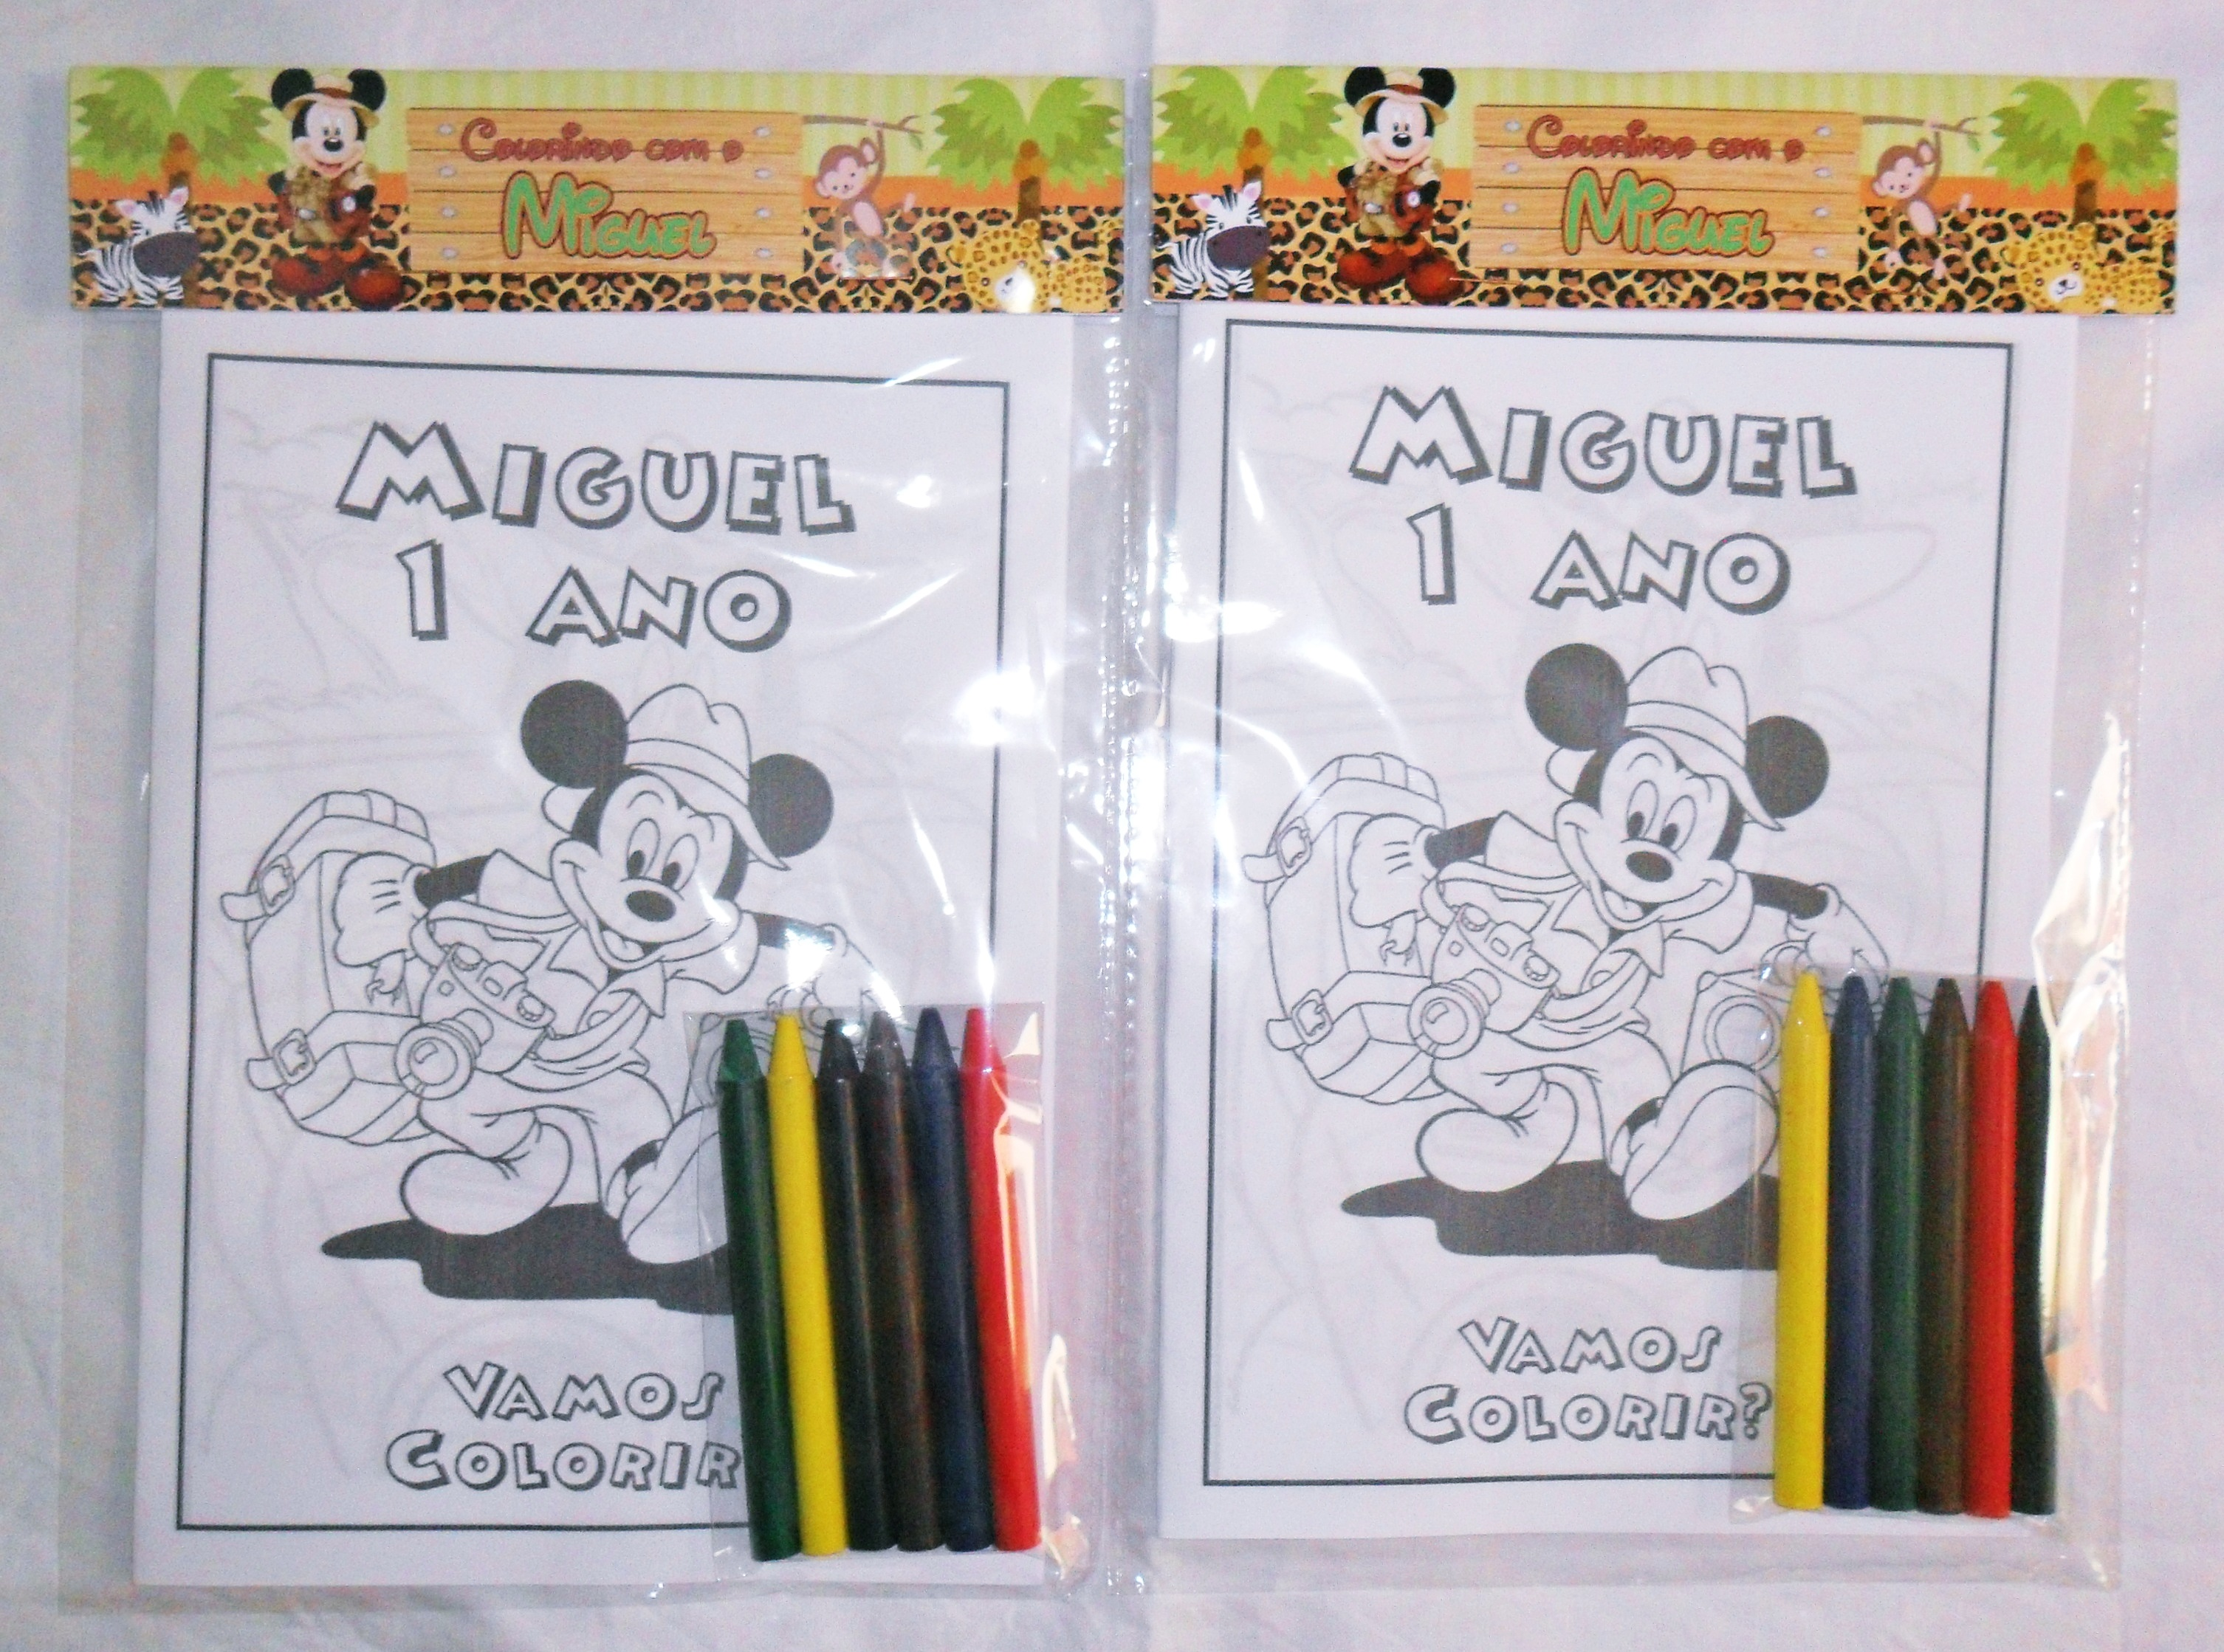 Kit Colorir Mickey Safari No Elo7 Atelie Encantos Do Recanto